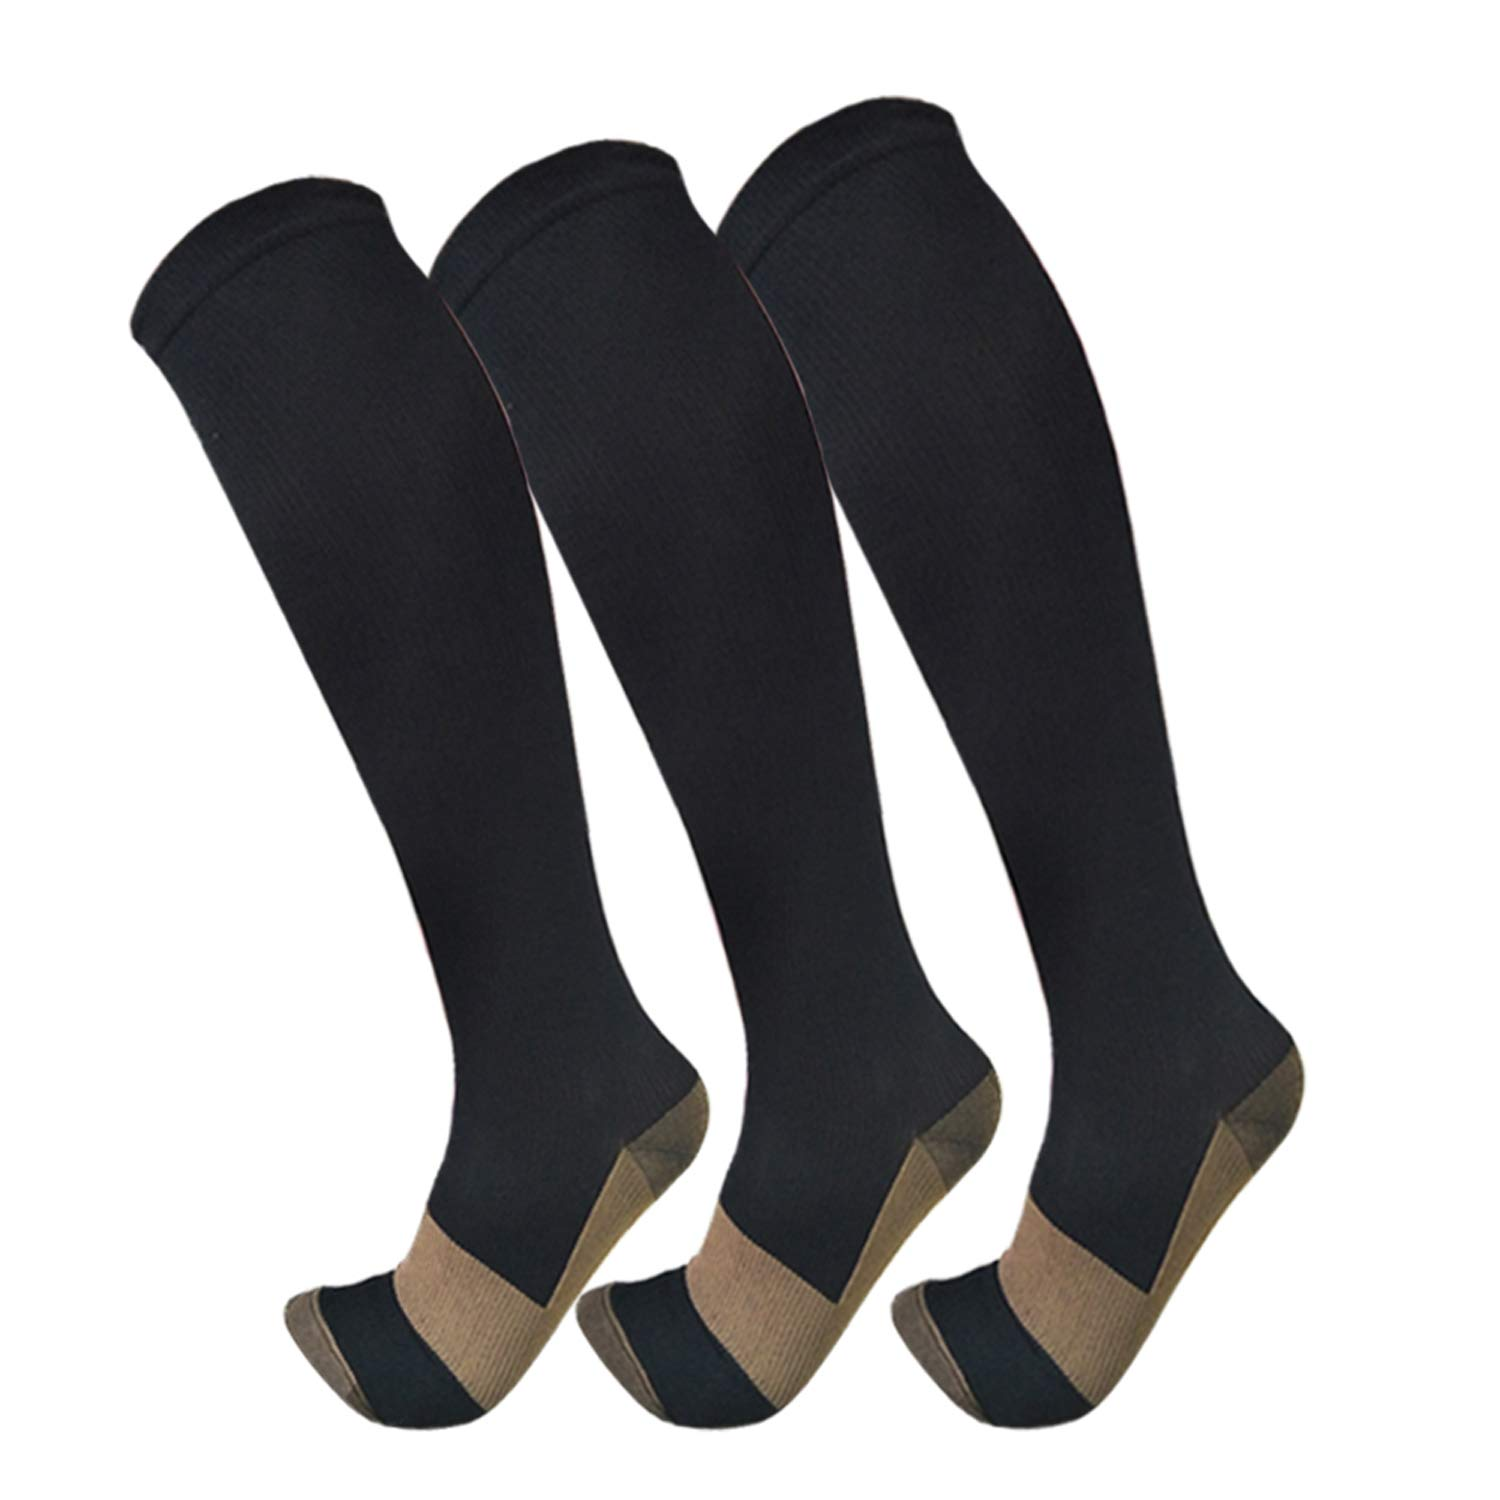 FuelMeFoot Copper Compression Stockings For Men And Women